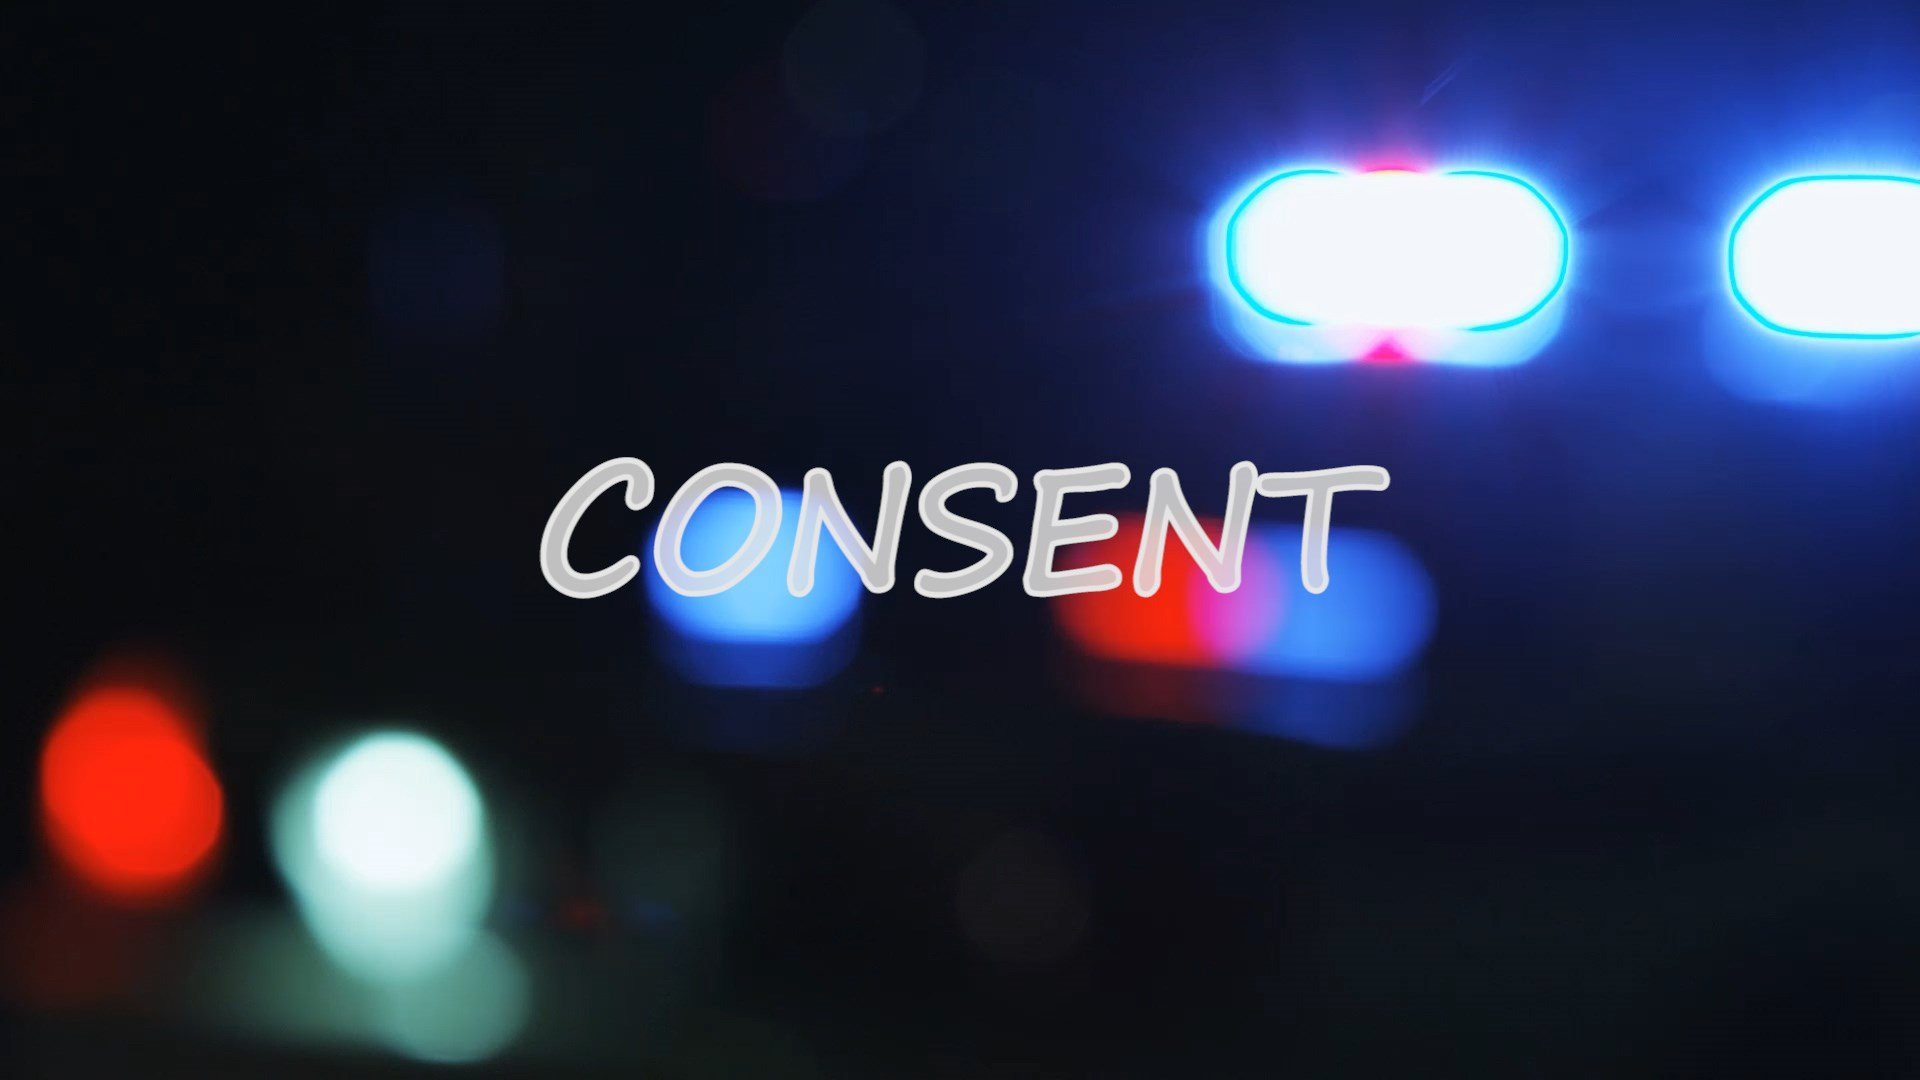 Olmsted County has averaged 65 reports of rape per year for the last five years